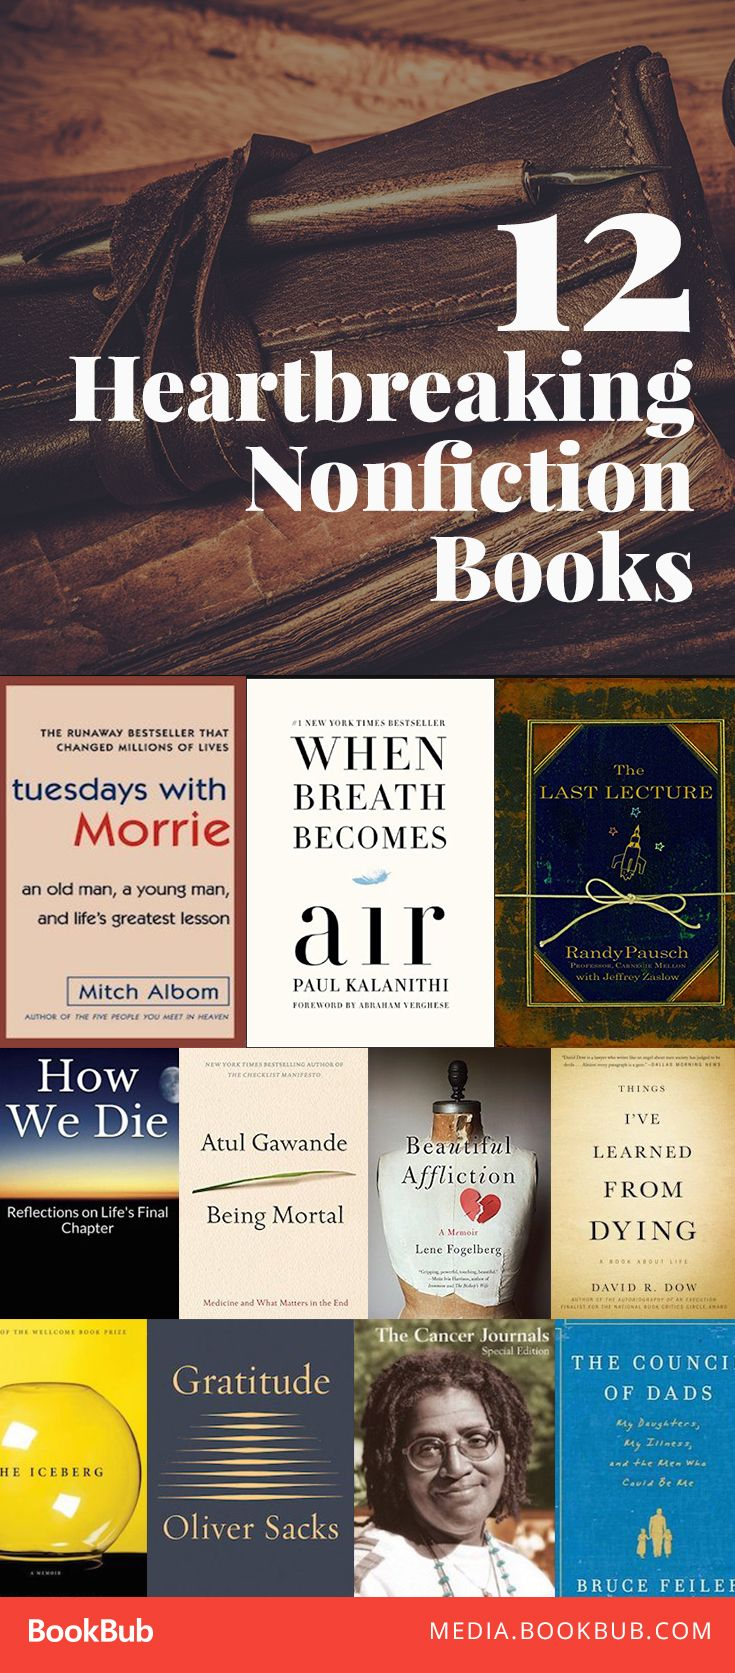 12 heartbreaking nonfiction books worth a read. These life changing memoirs are emotional and inspiring.